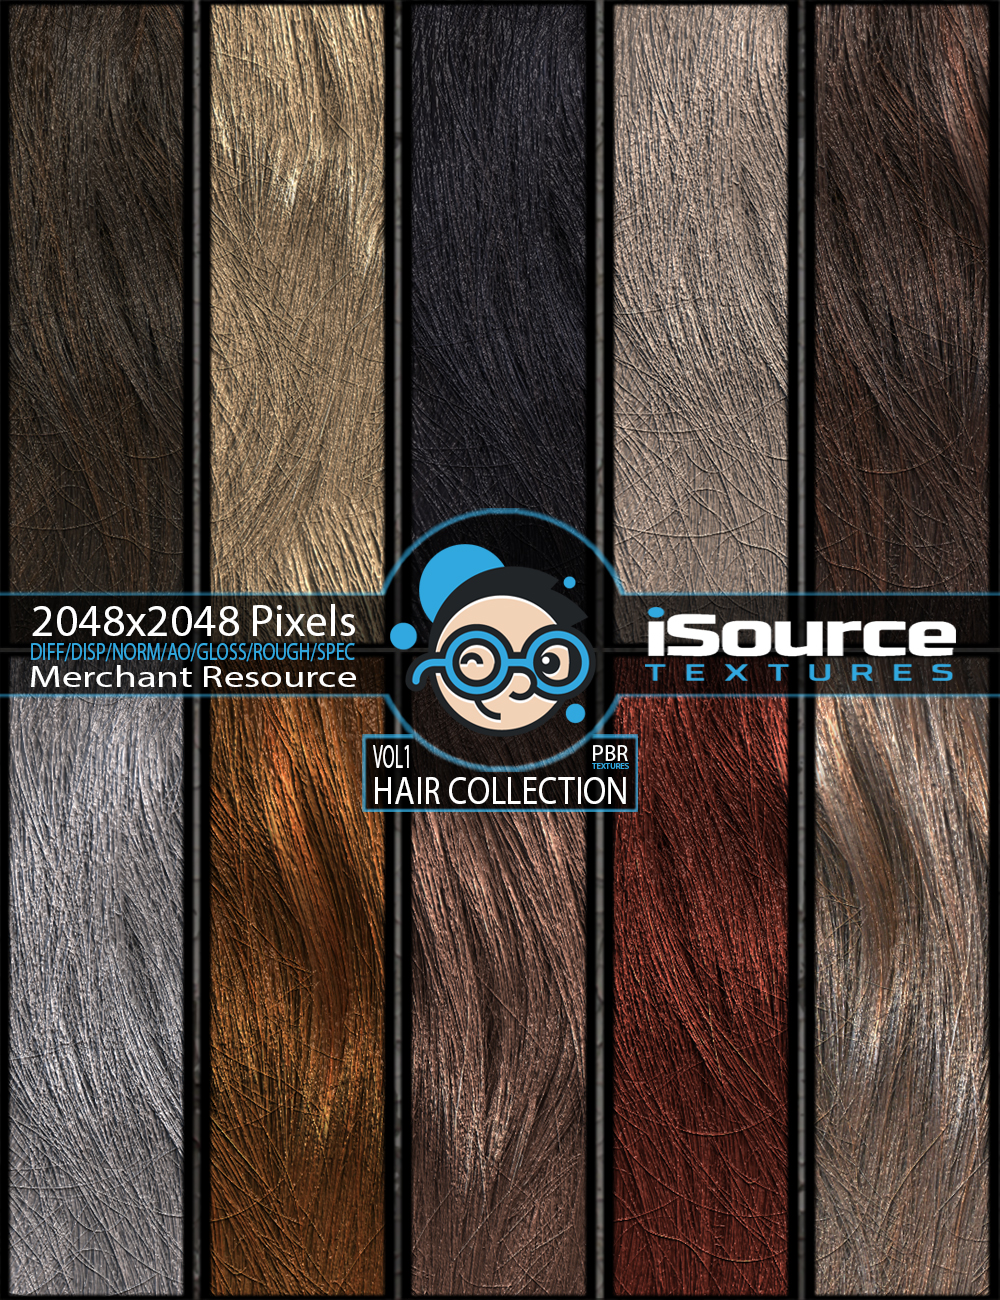 Hair Collection - Vol1 (PBR Textures) Merchant Resource by KobaAlexander